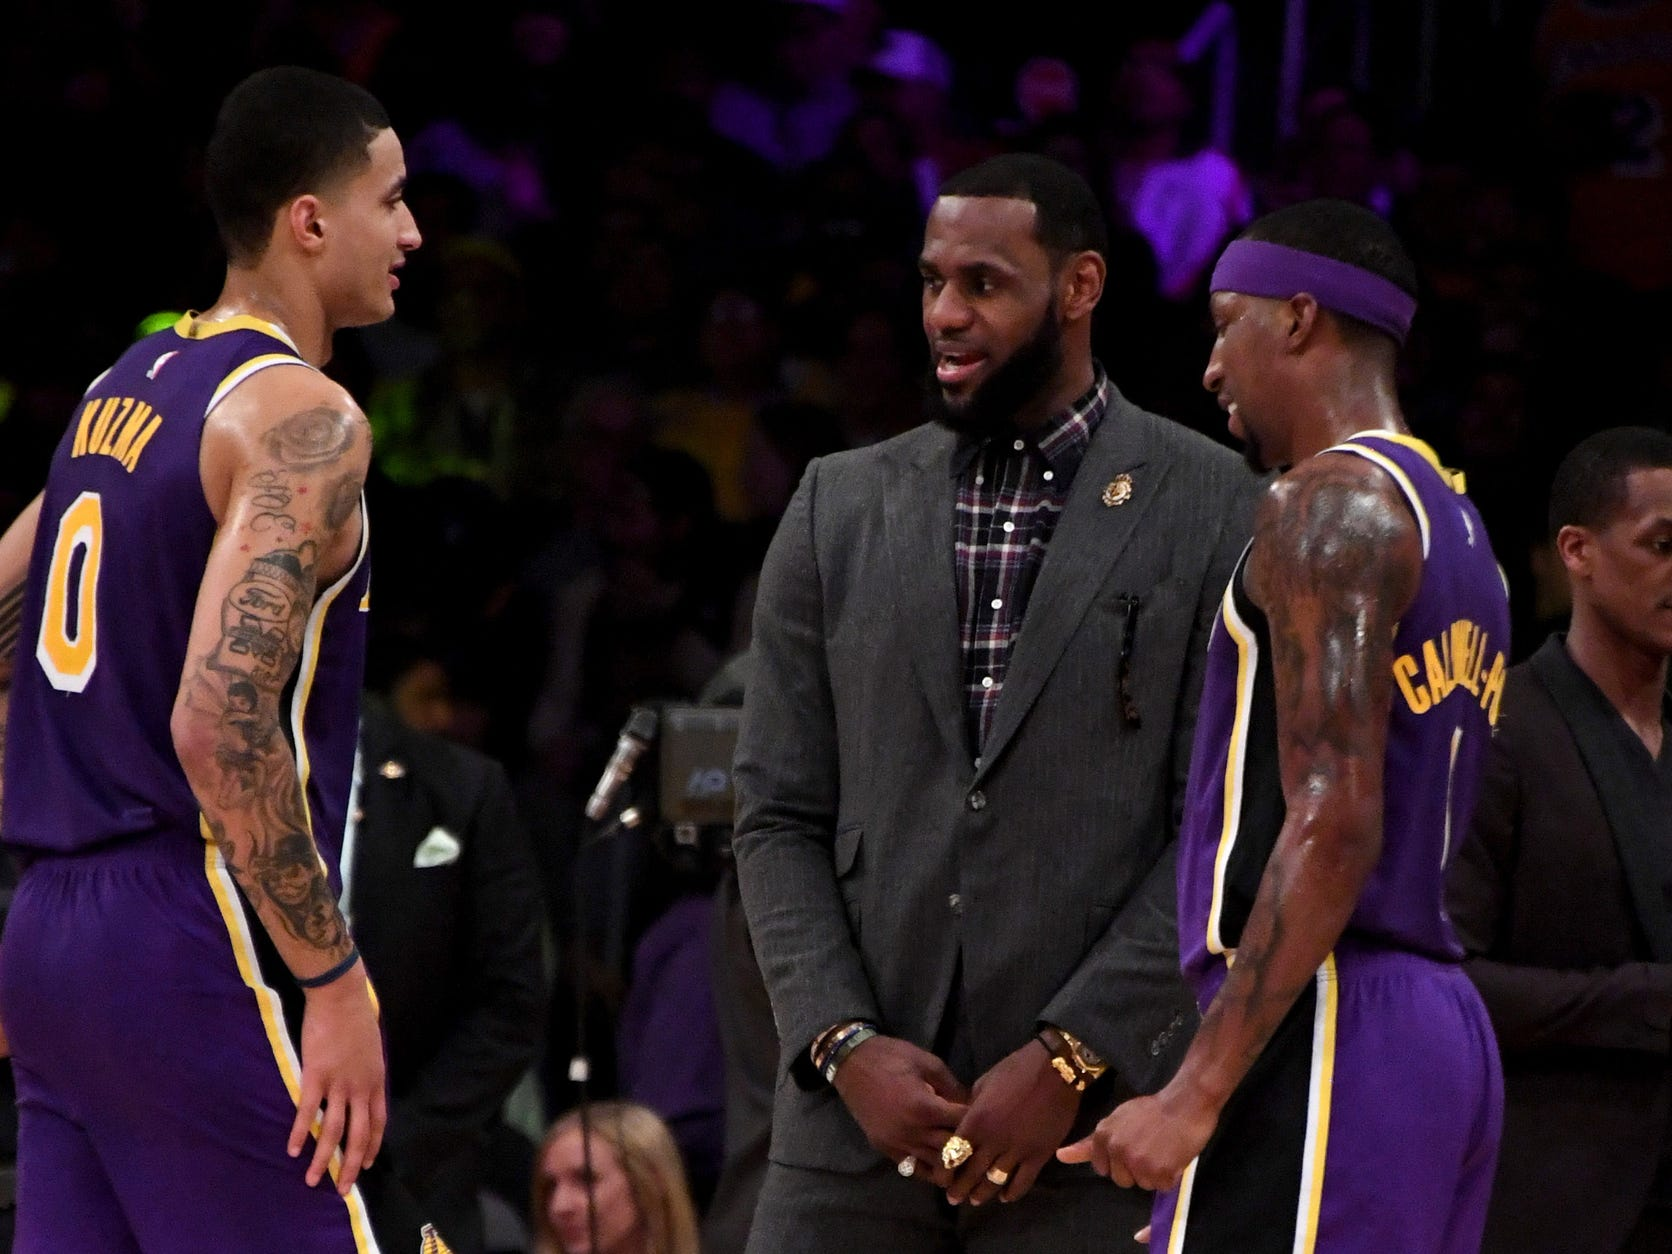 Los Angeles Lakers forward LeBron James (center) talks with forward Kyle Kuzma (left) and guard Kentavious Caldwell-Pope (right) during the first half against the Detroit Pistons at the Staples Center on Wednesday, Jan. 9, 2019, in Los Angeles.